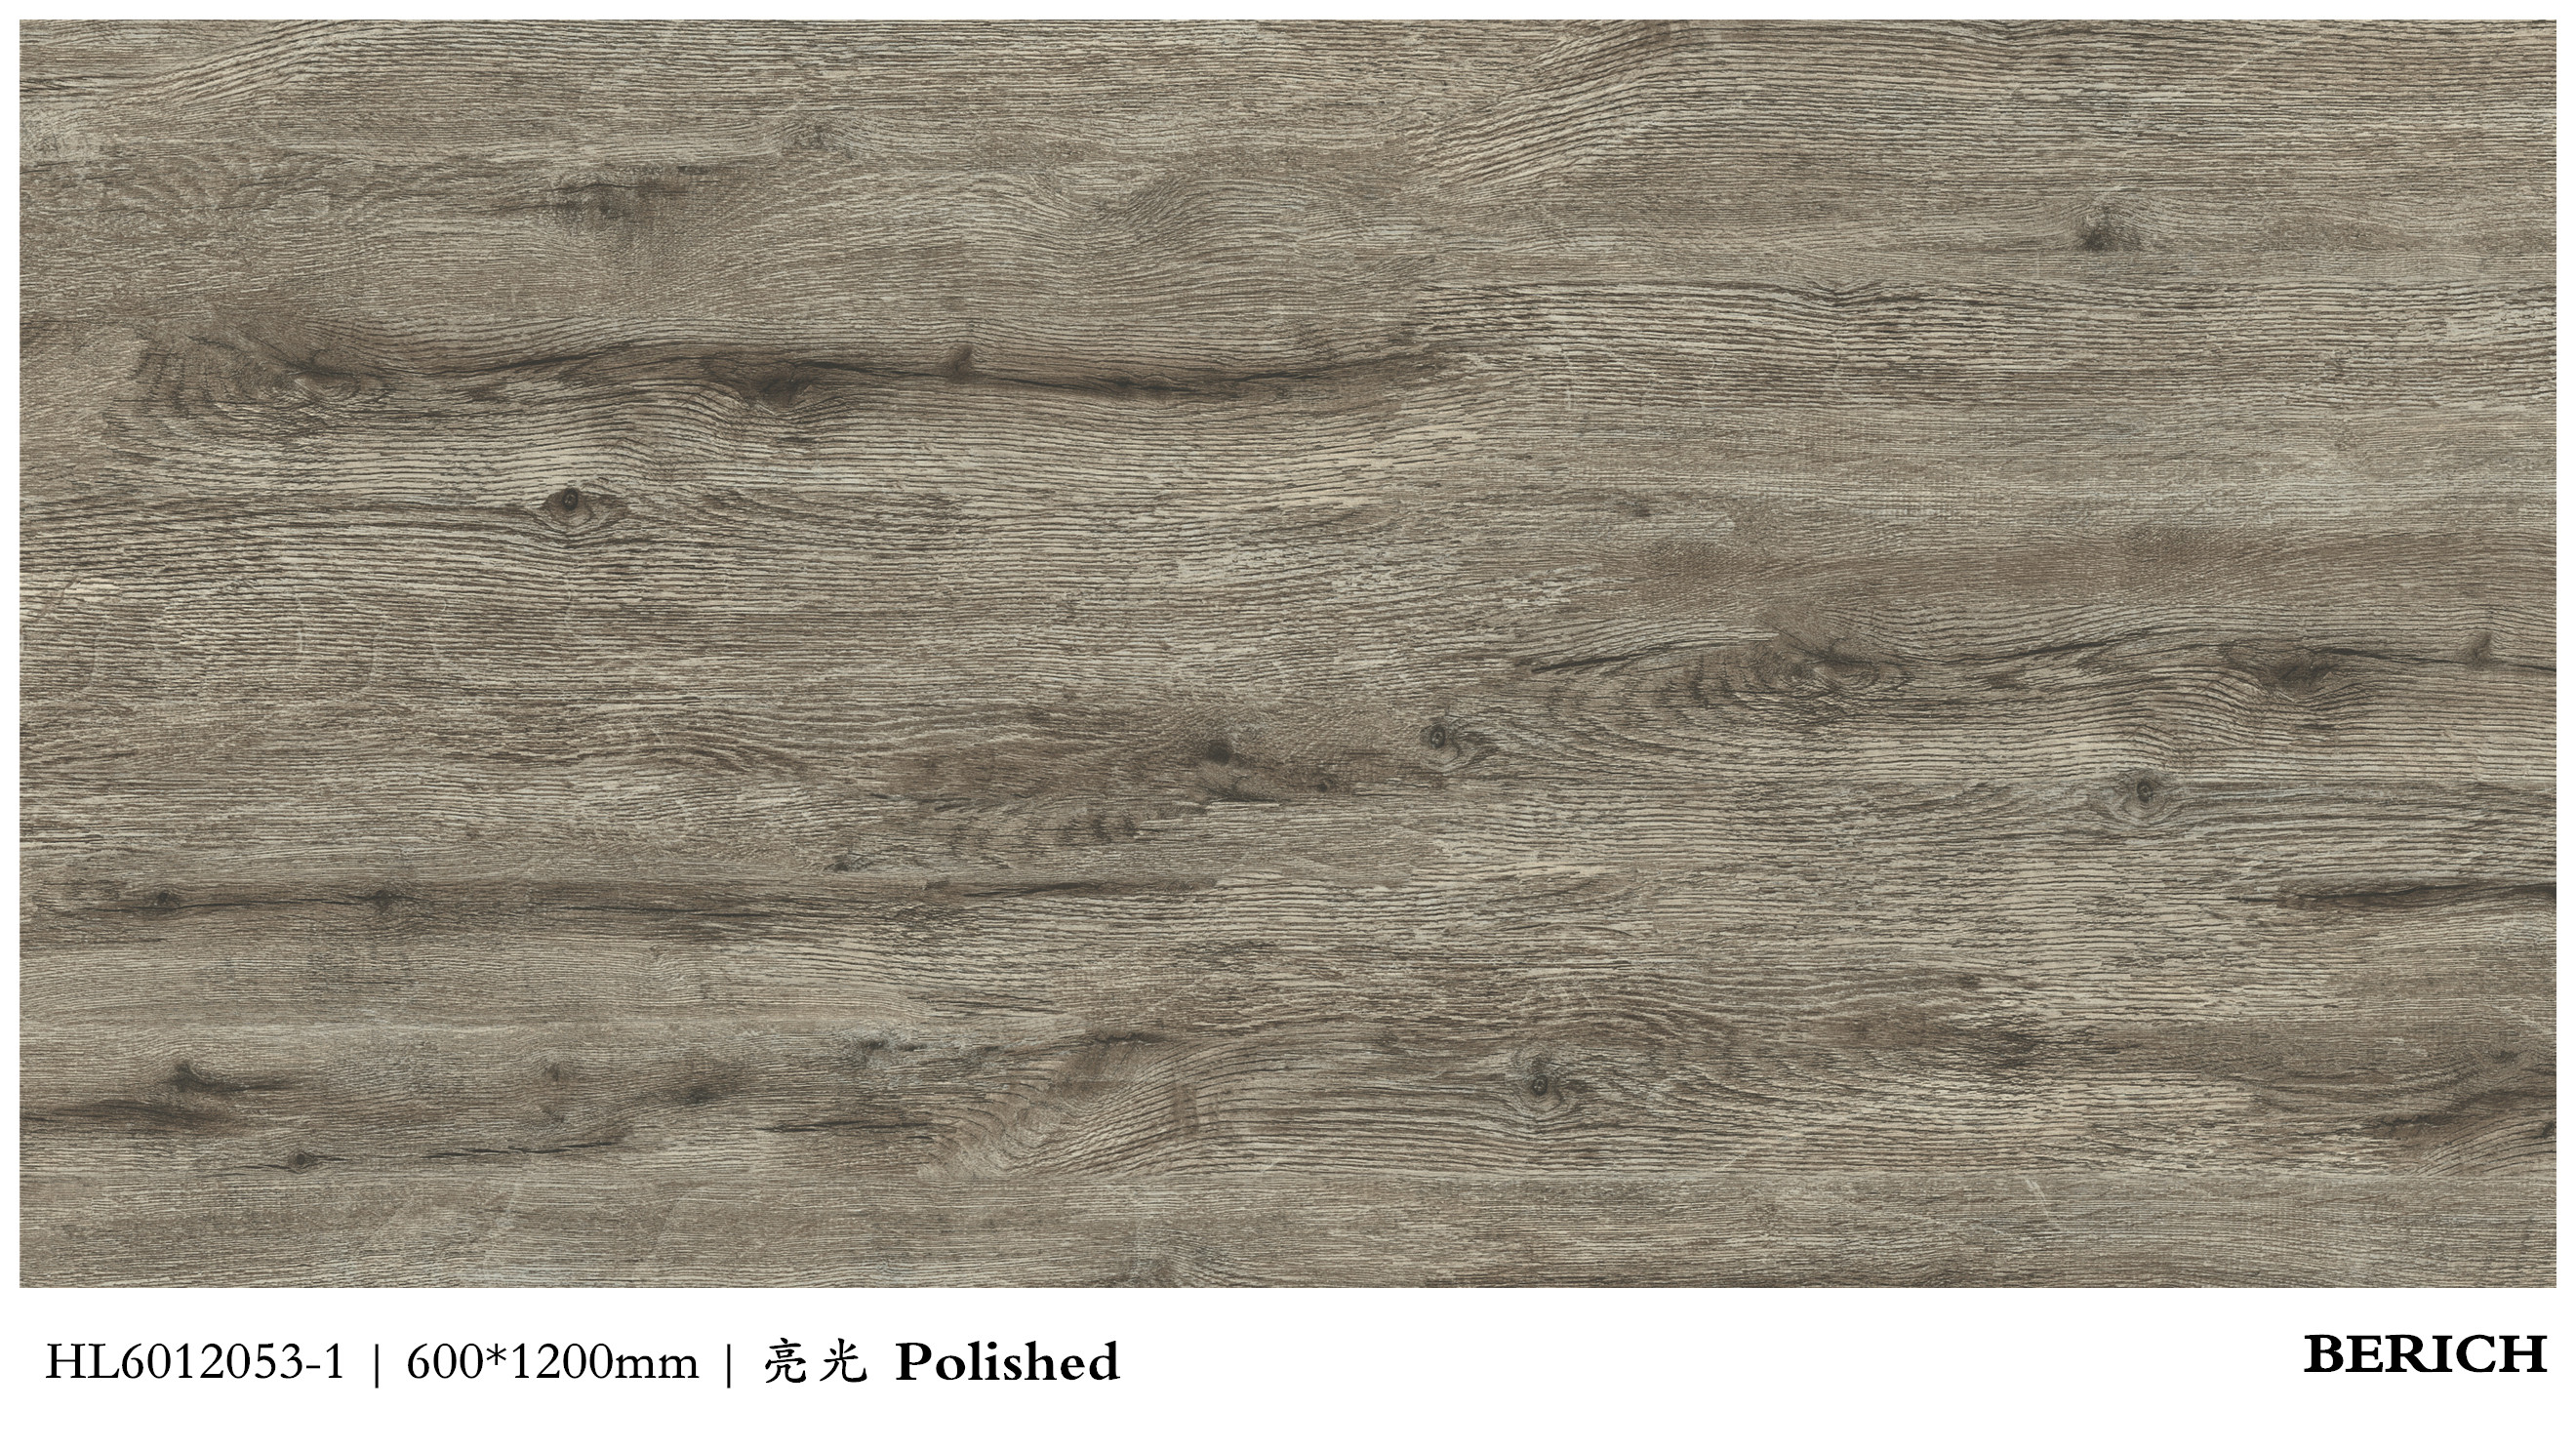 Berich wood grain porcelanato polished floor tile